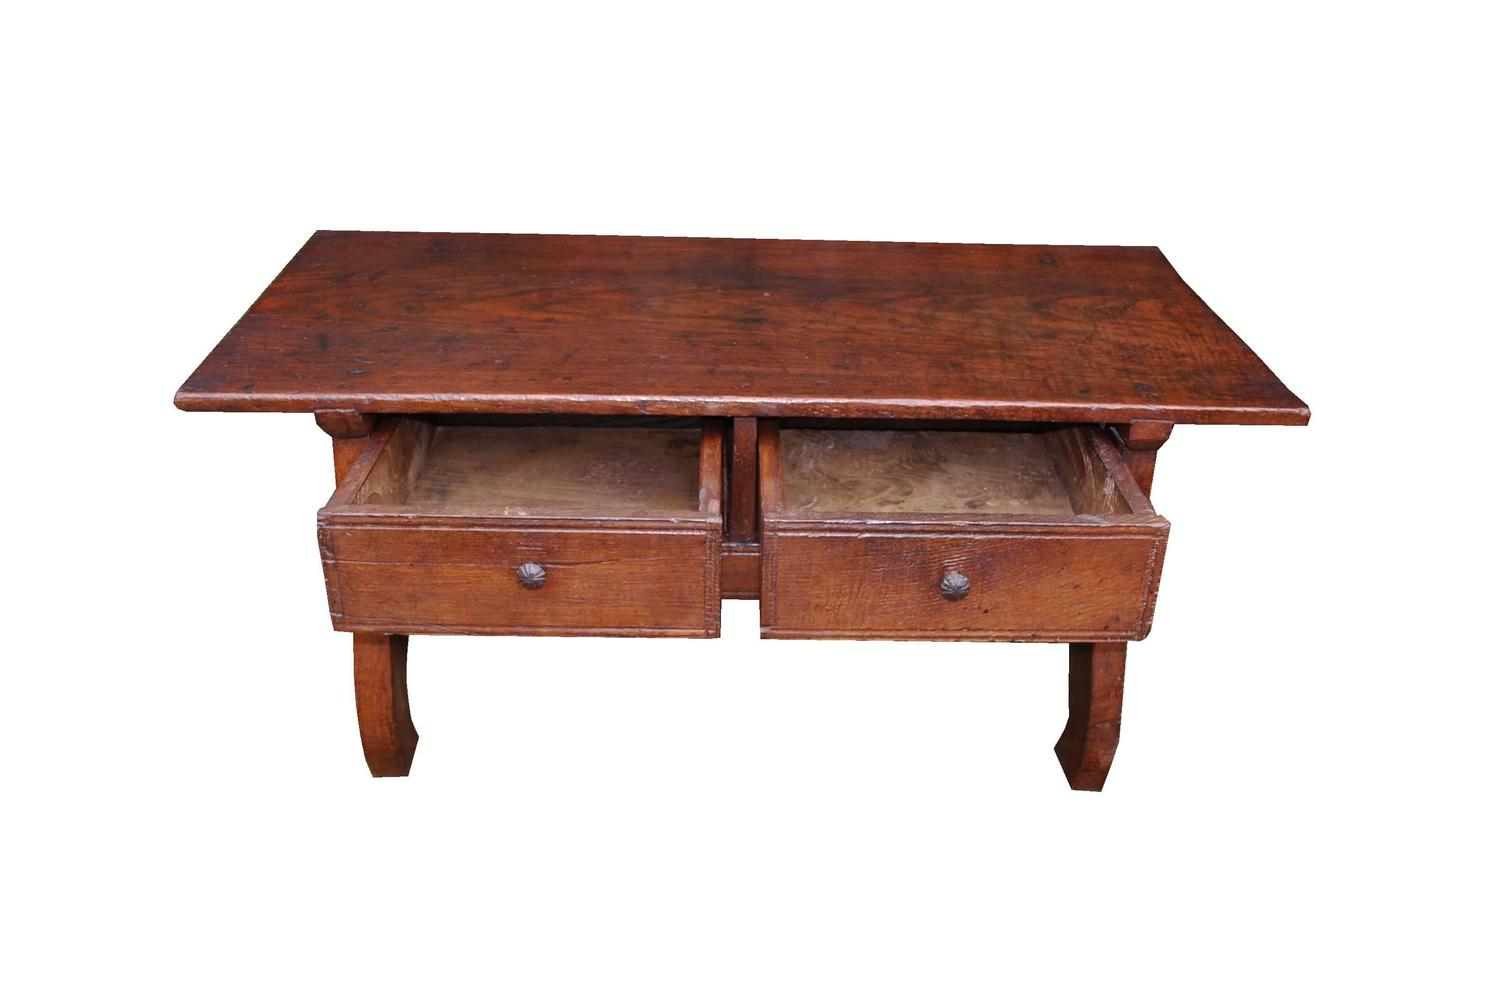 19th century walnut wooden low table or coffee table made in spain at 1stdibs Low wooden coffee table